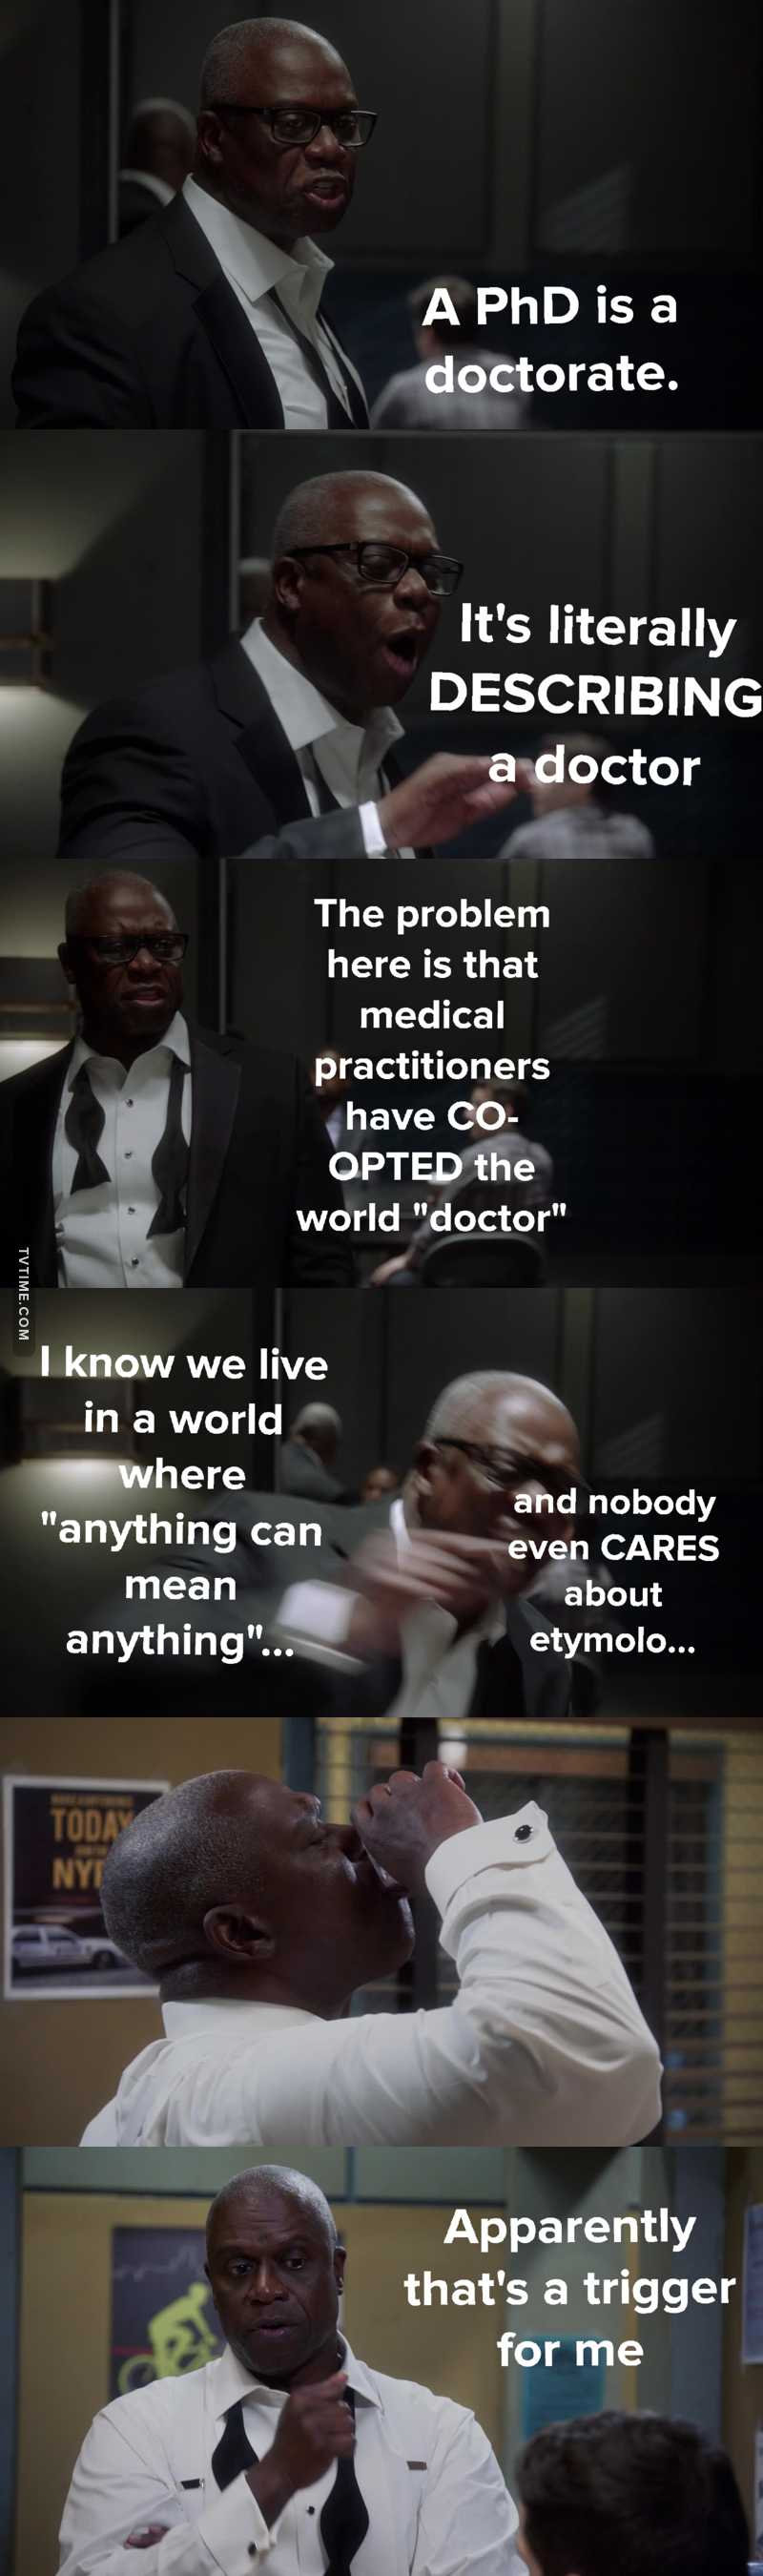 I hate doing texts in this app but this scene broke me real hard. I'm loving Capt Holt more each day.